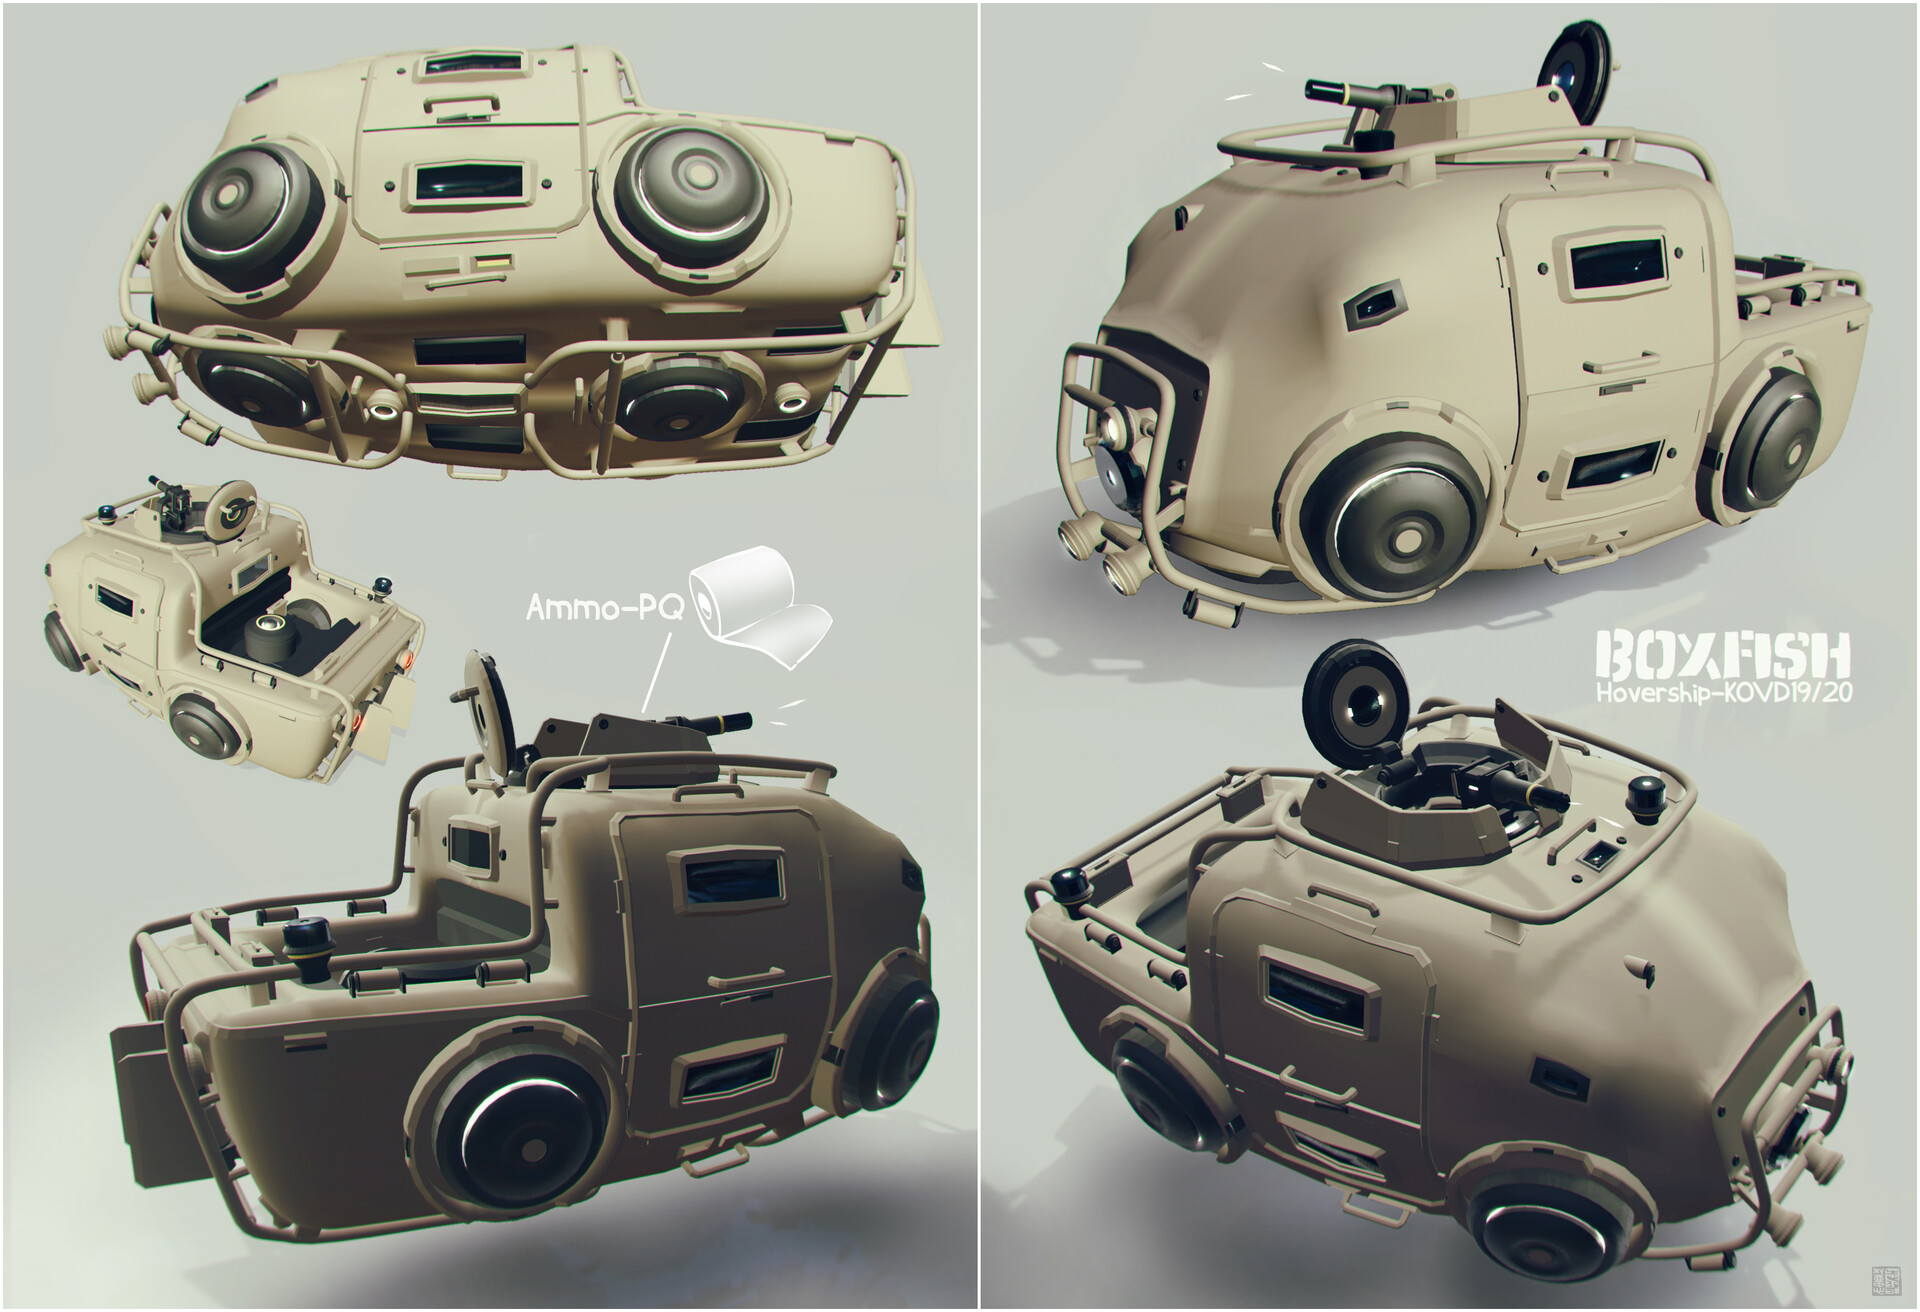 Boxfish style armored hovership :)